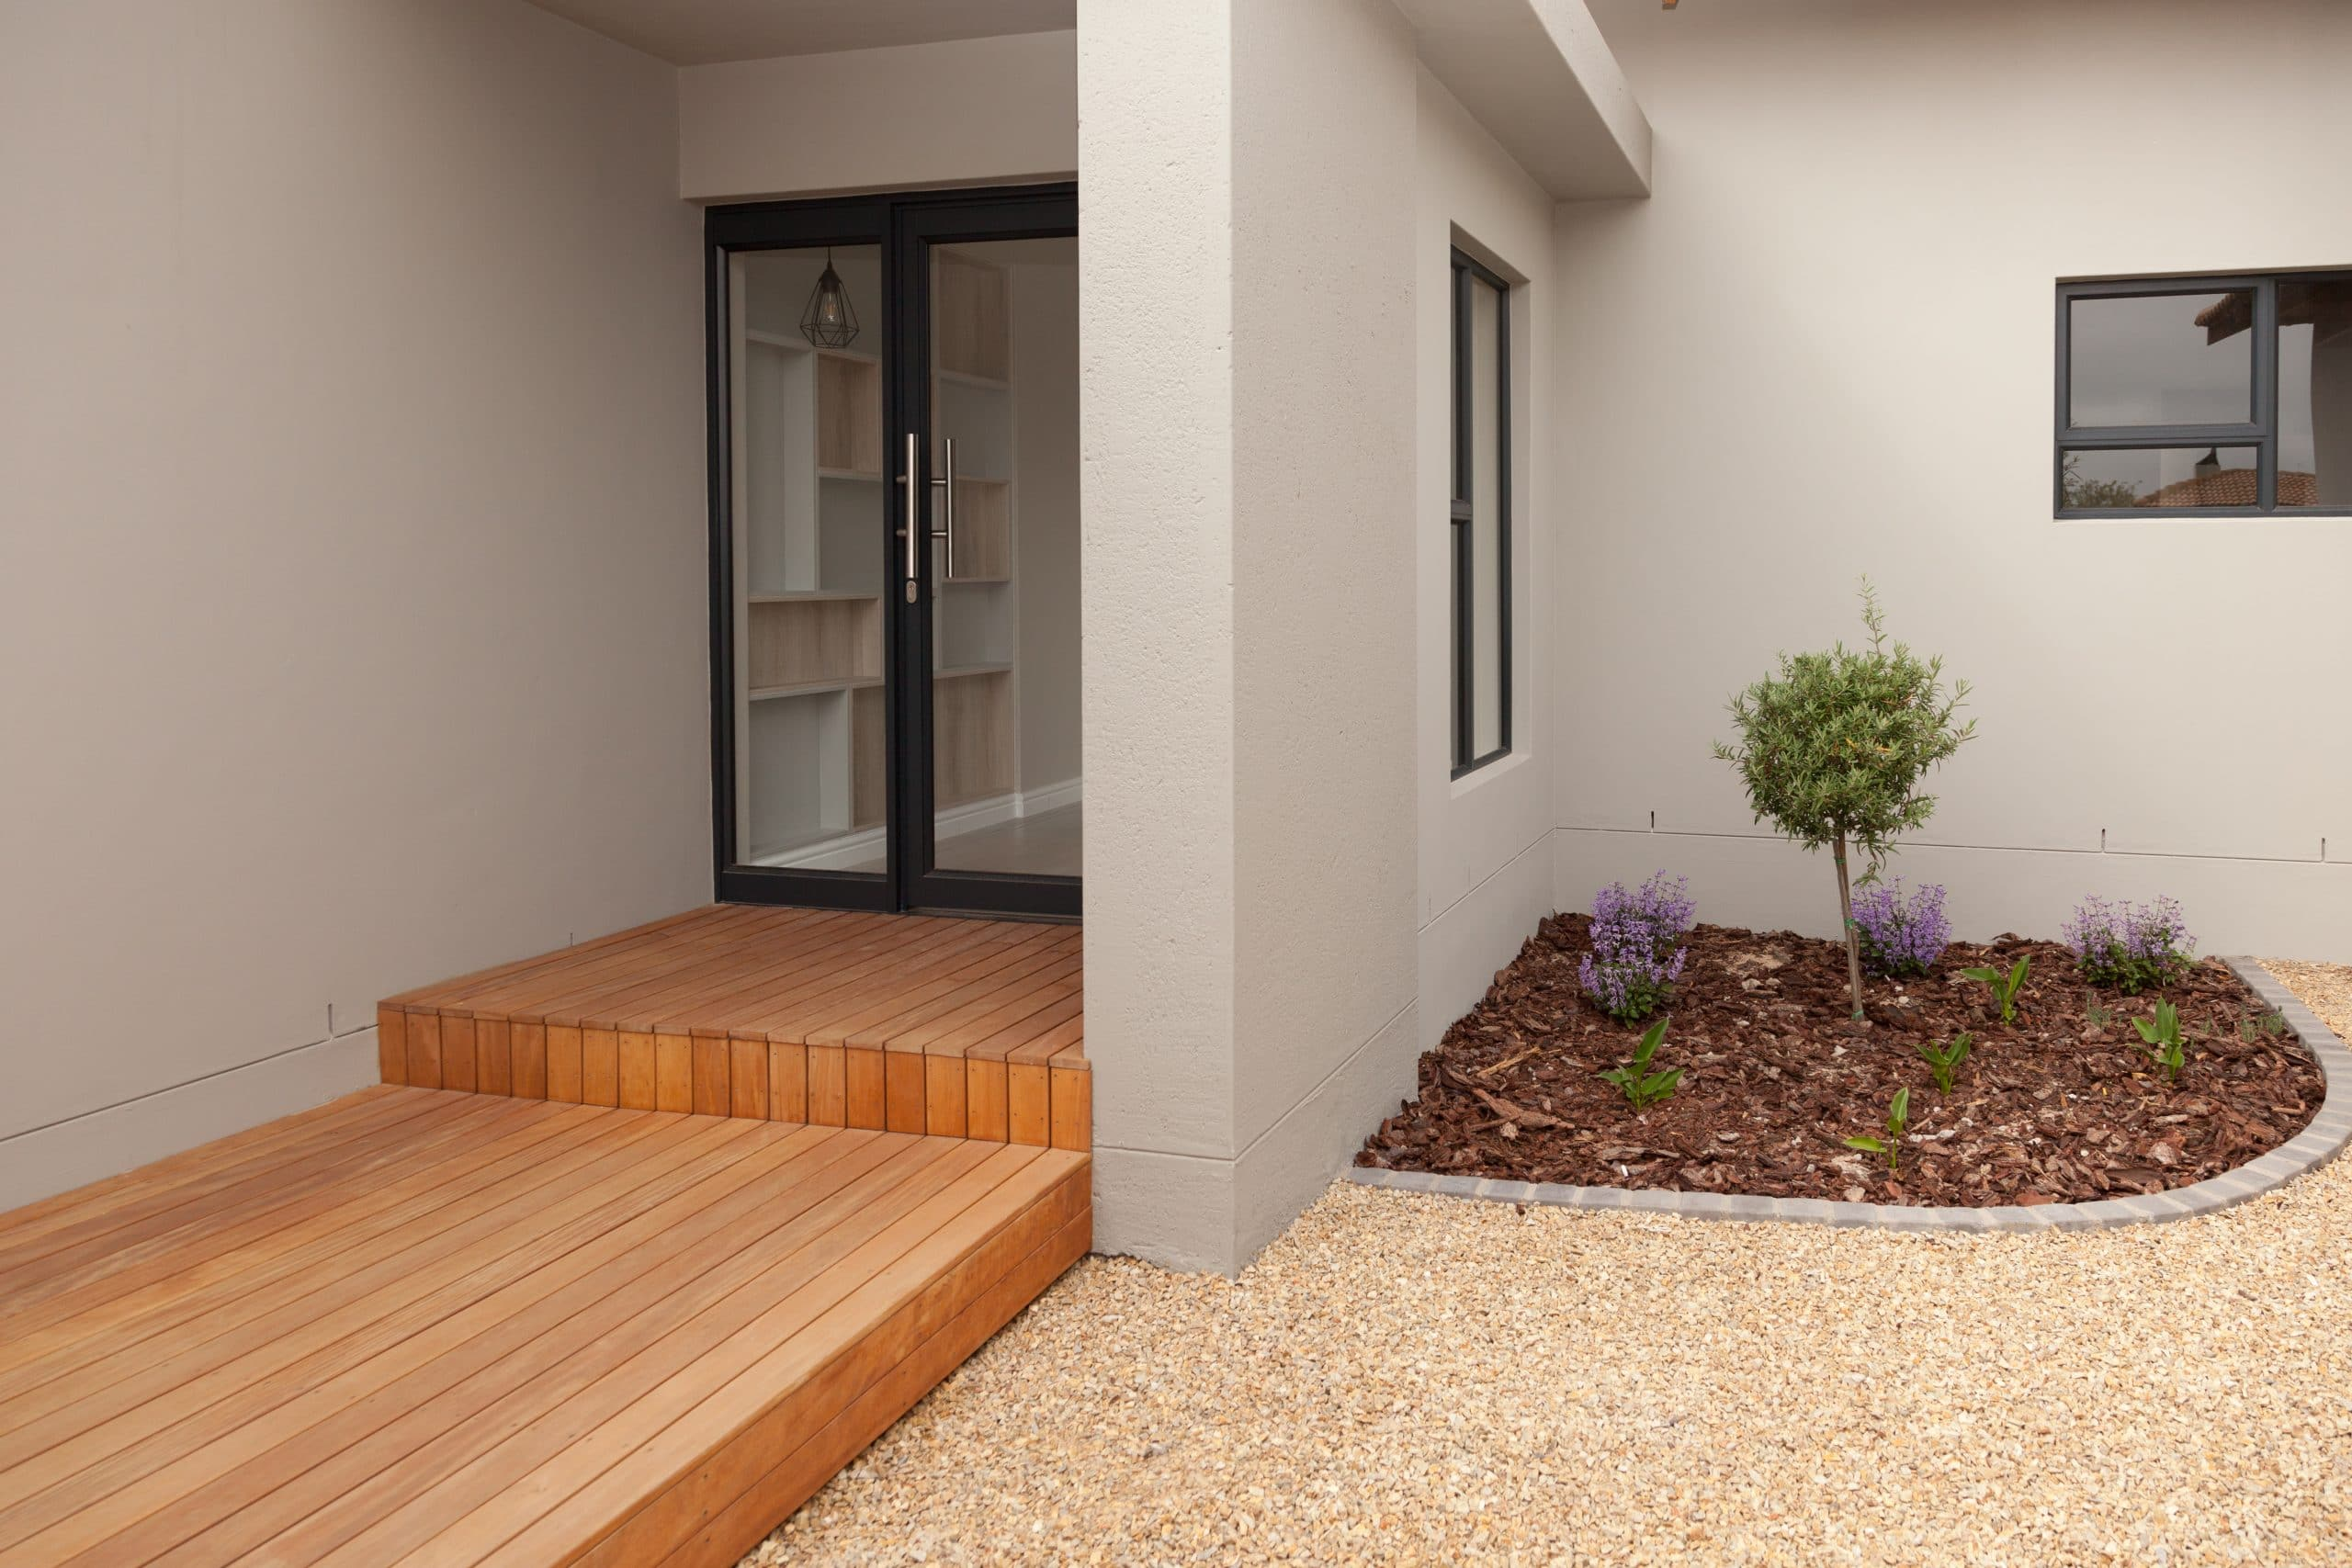 wooden timber decking entrance with enclossed courtyard langebaan country estate